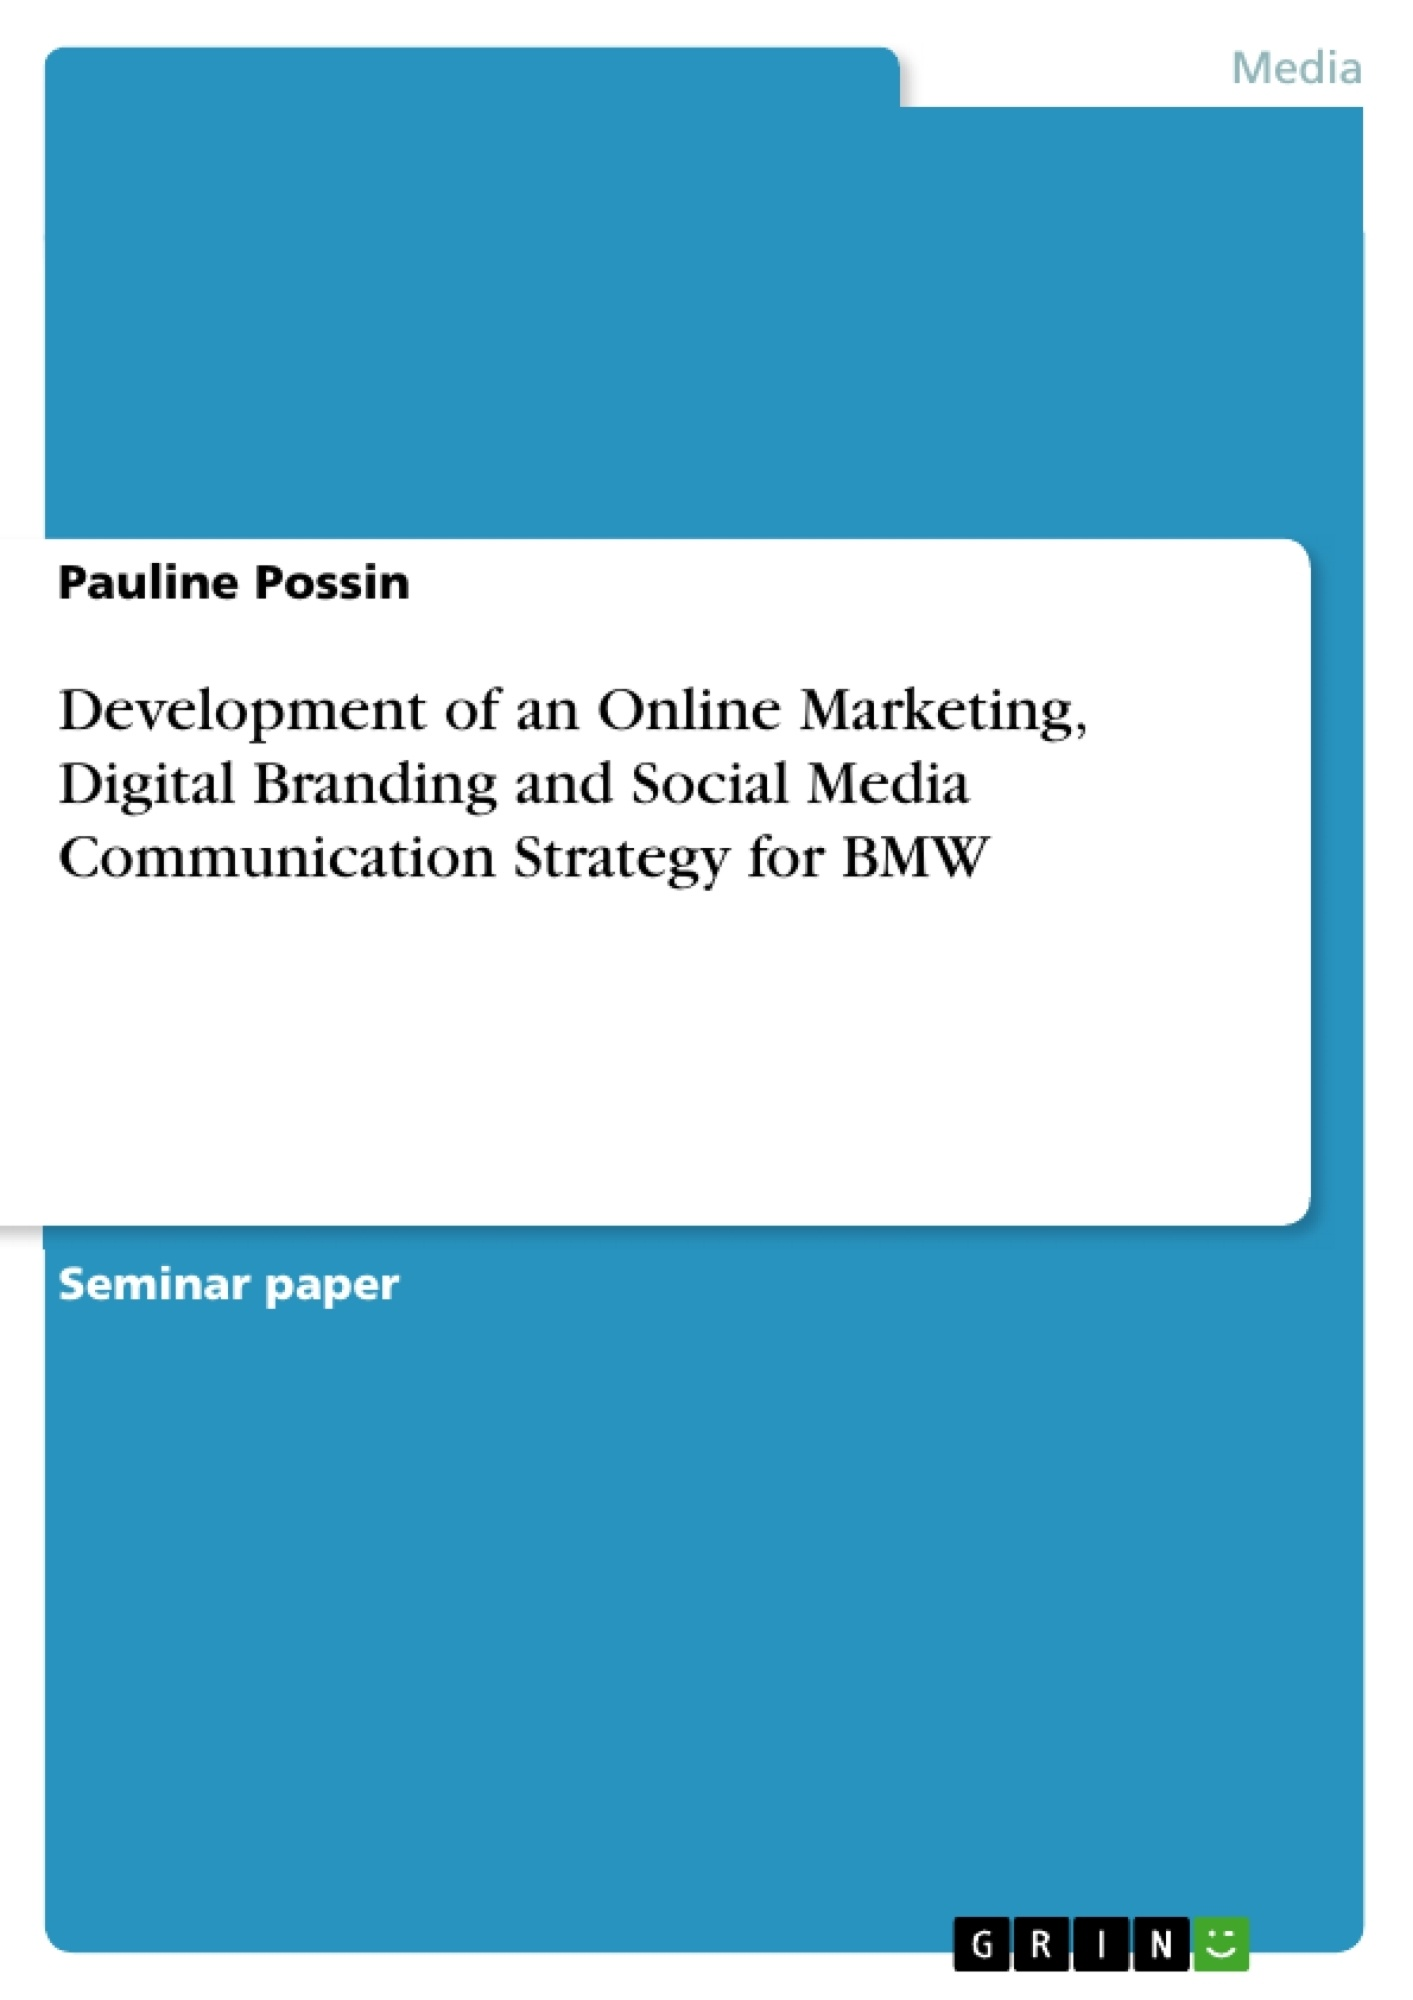 GRIN - Development of an Online Marketing, Digital Branding and Social  Media Communication Strategy for BMW